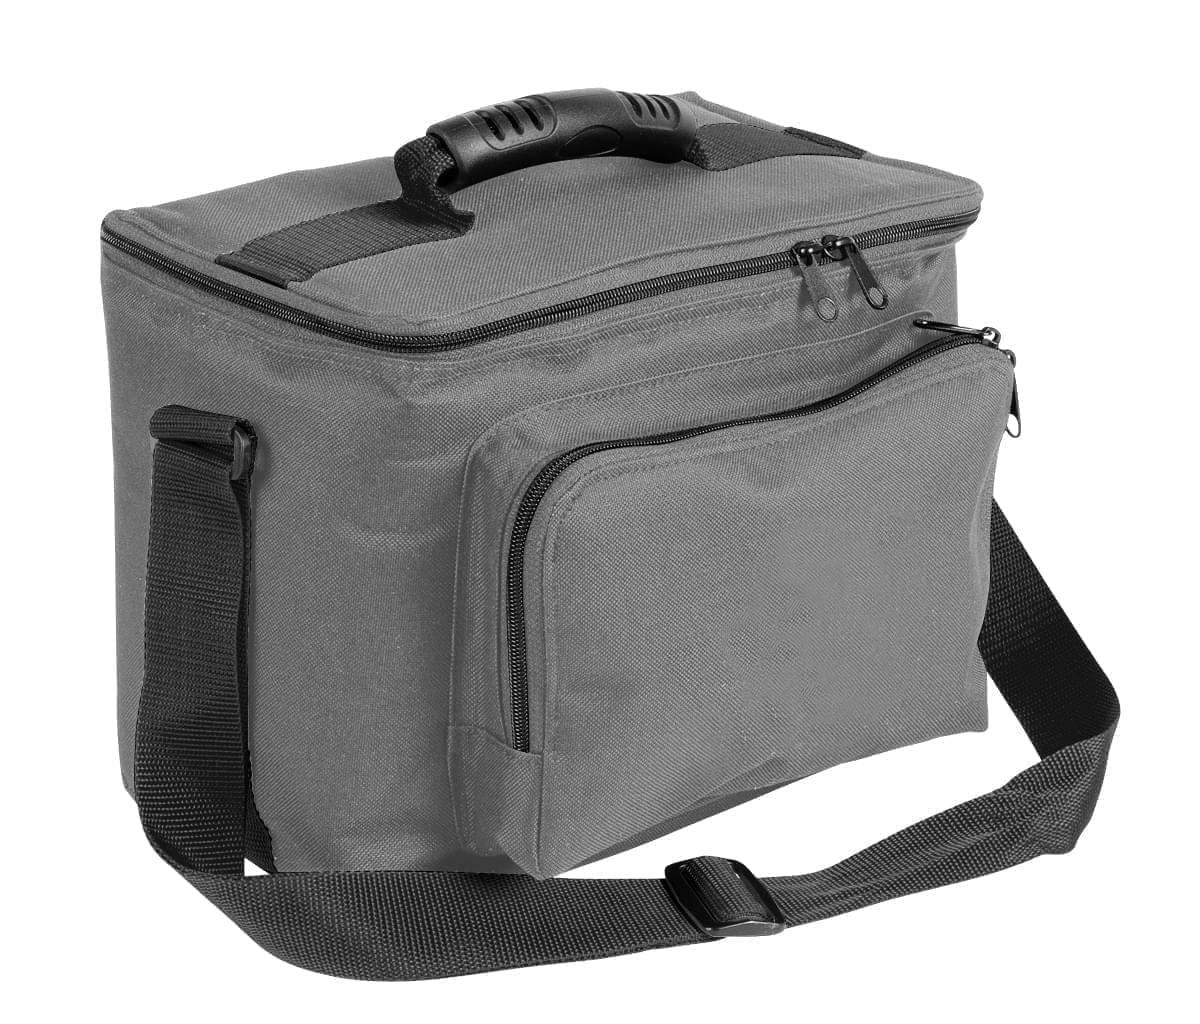 USA Made Nylon Poly Lunch Coolers, Grey-Black, 11001161-A1R